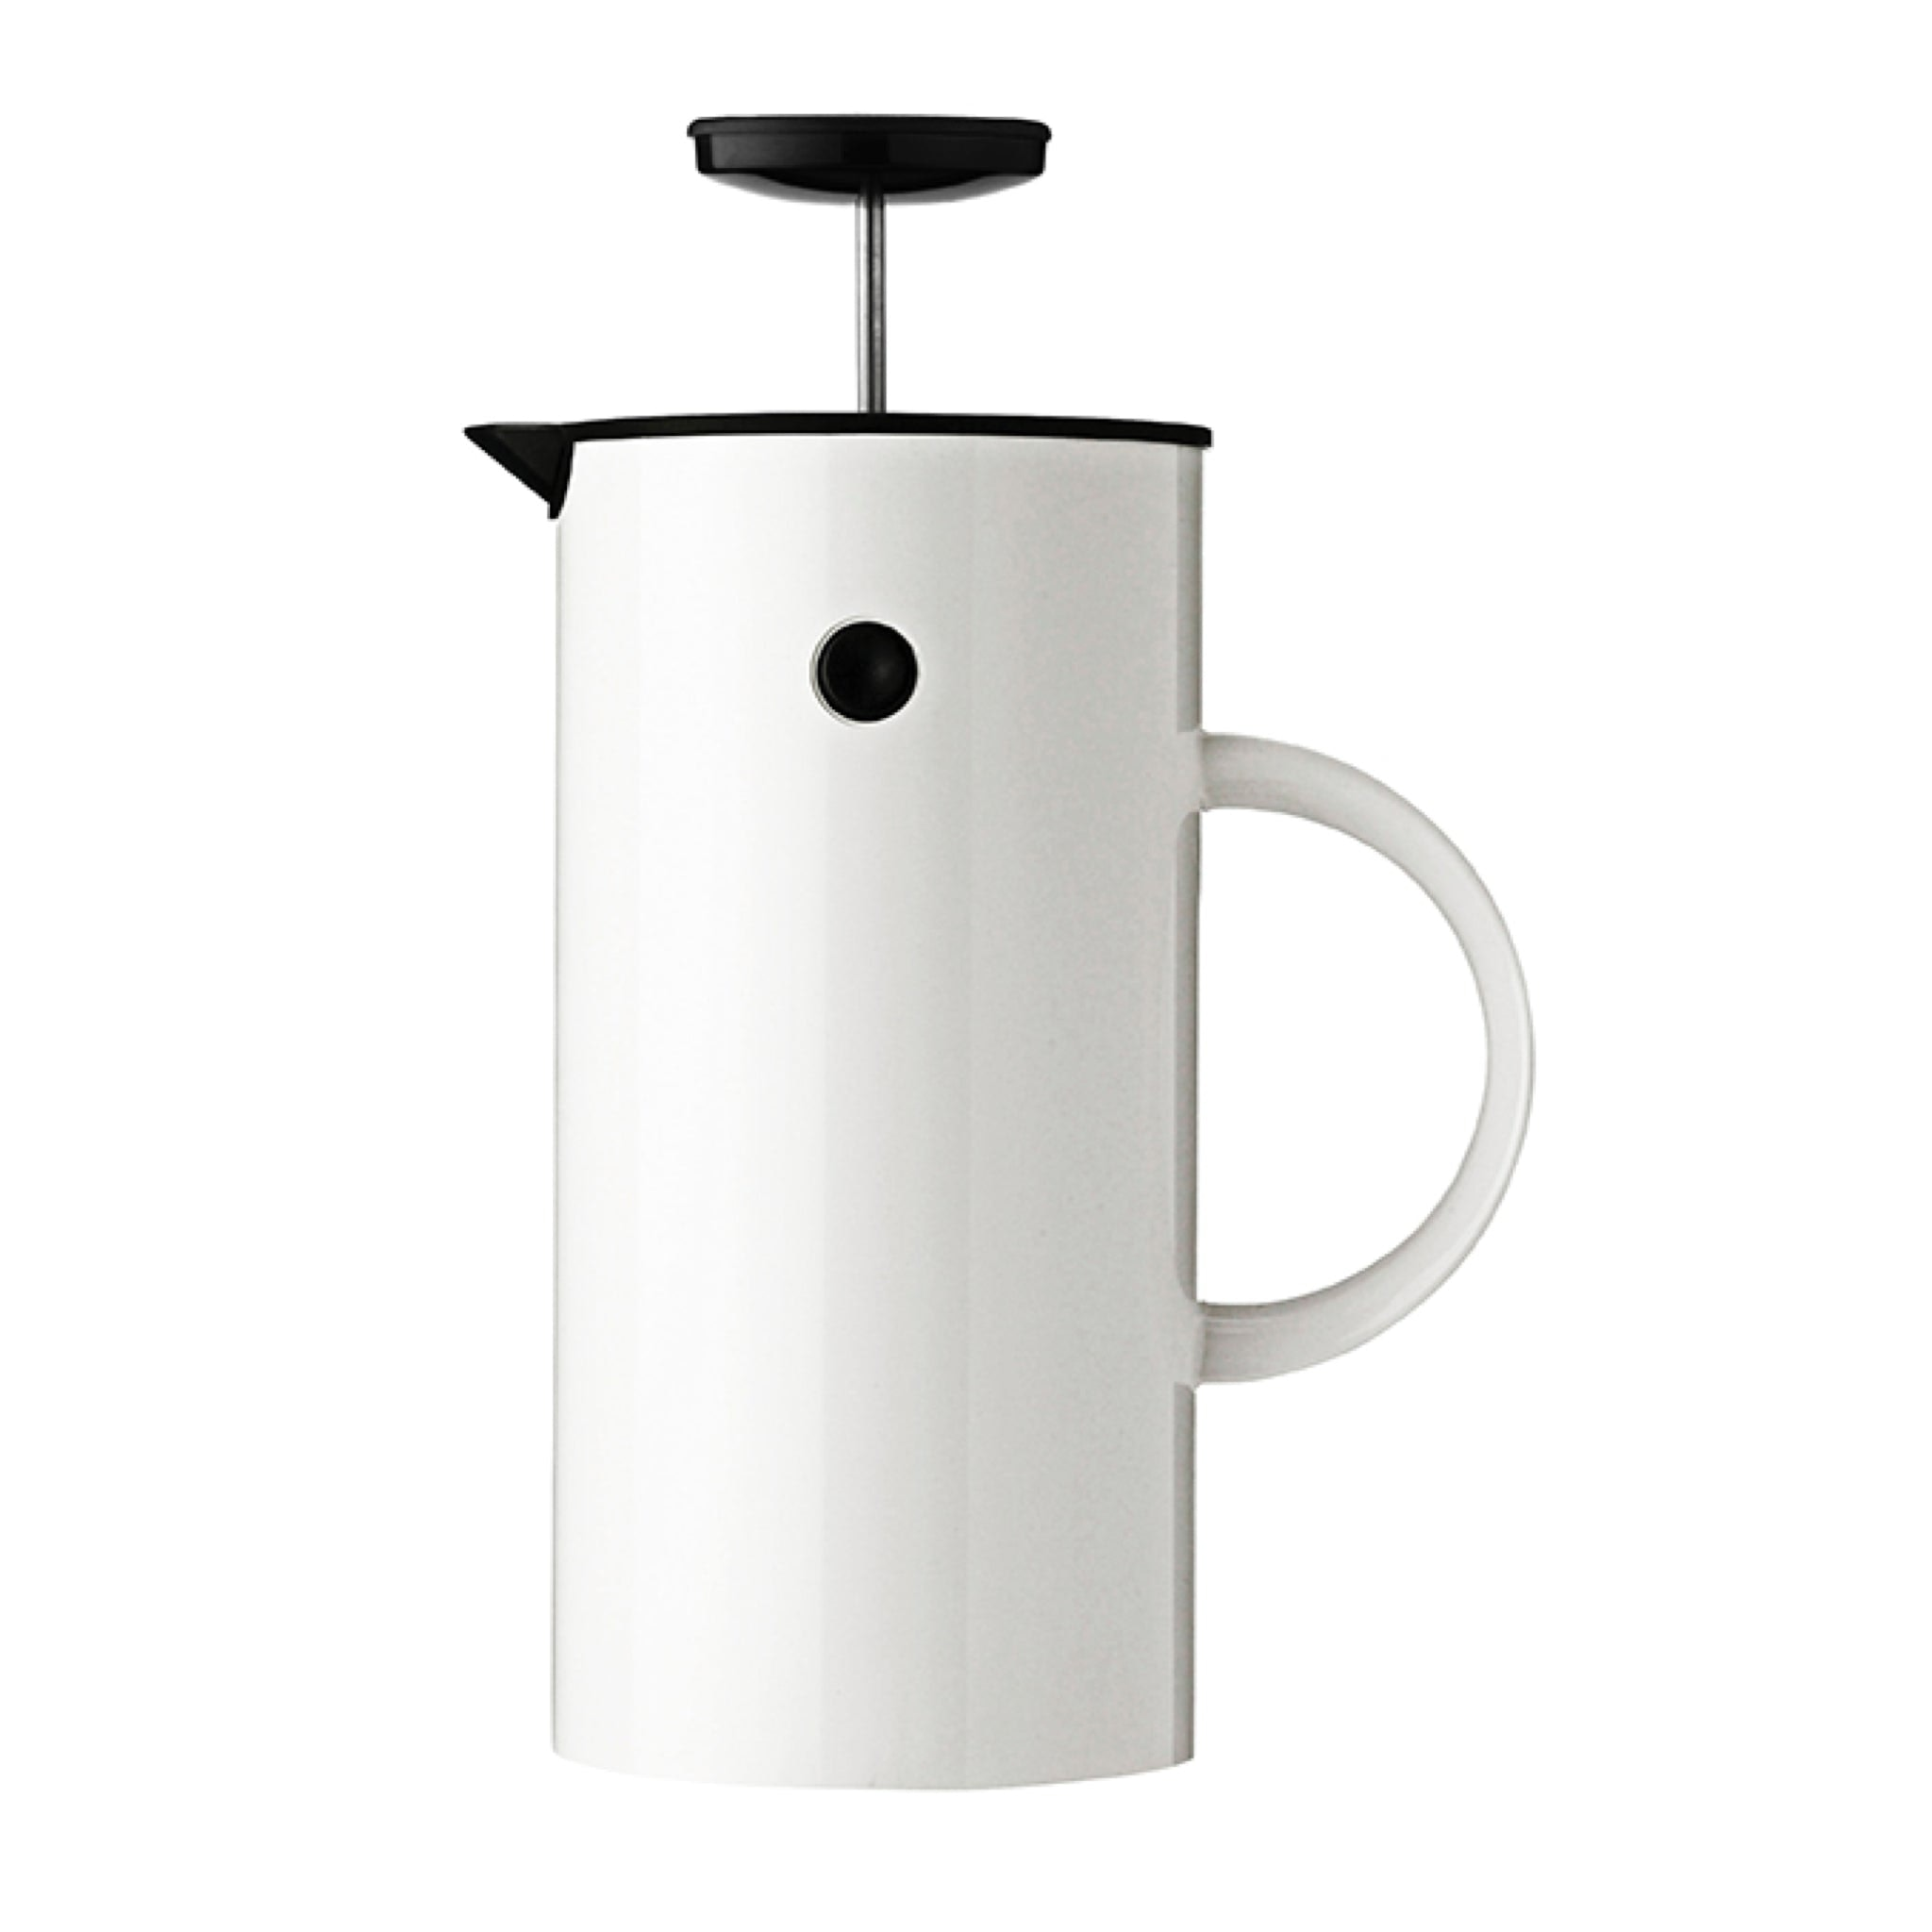 French Press Coffee Maker by Stelton